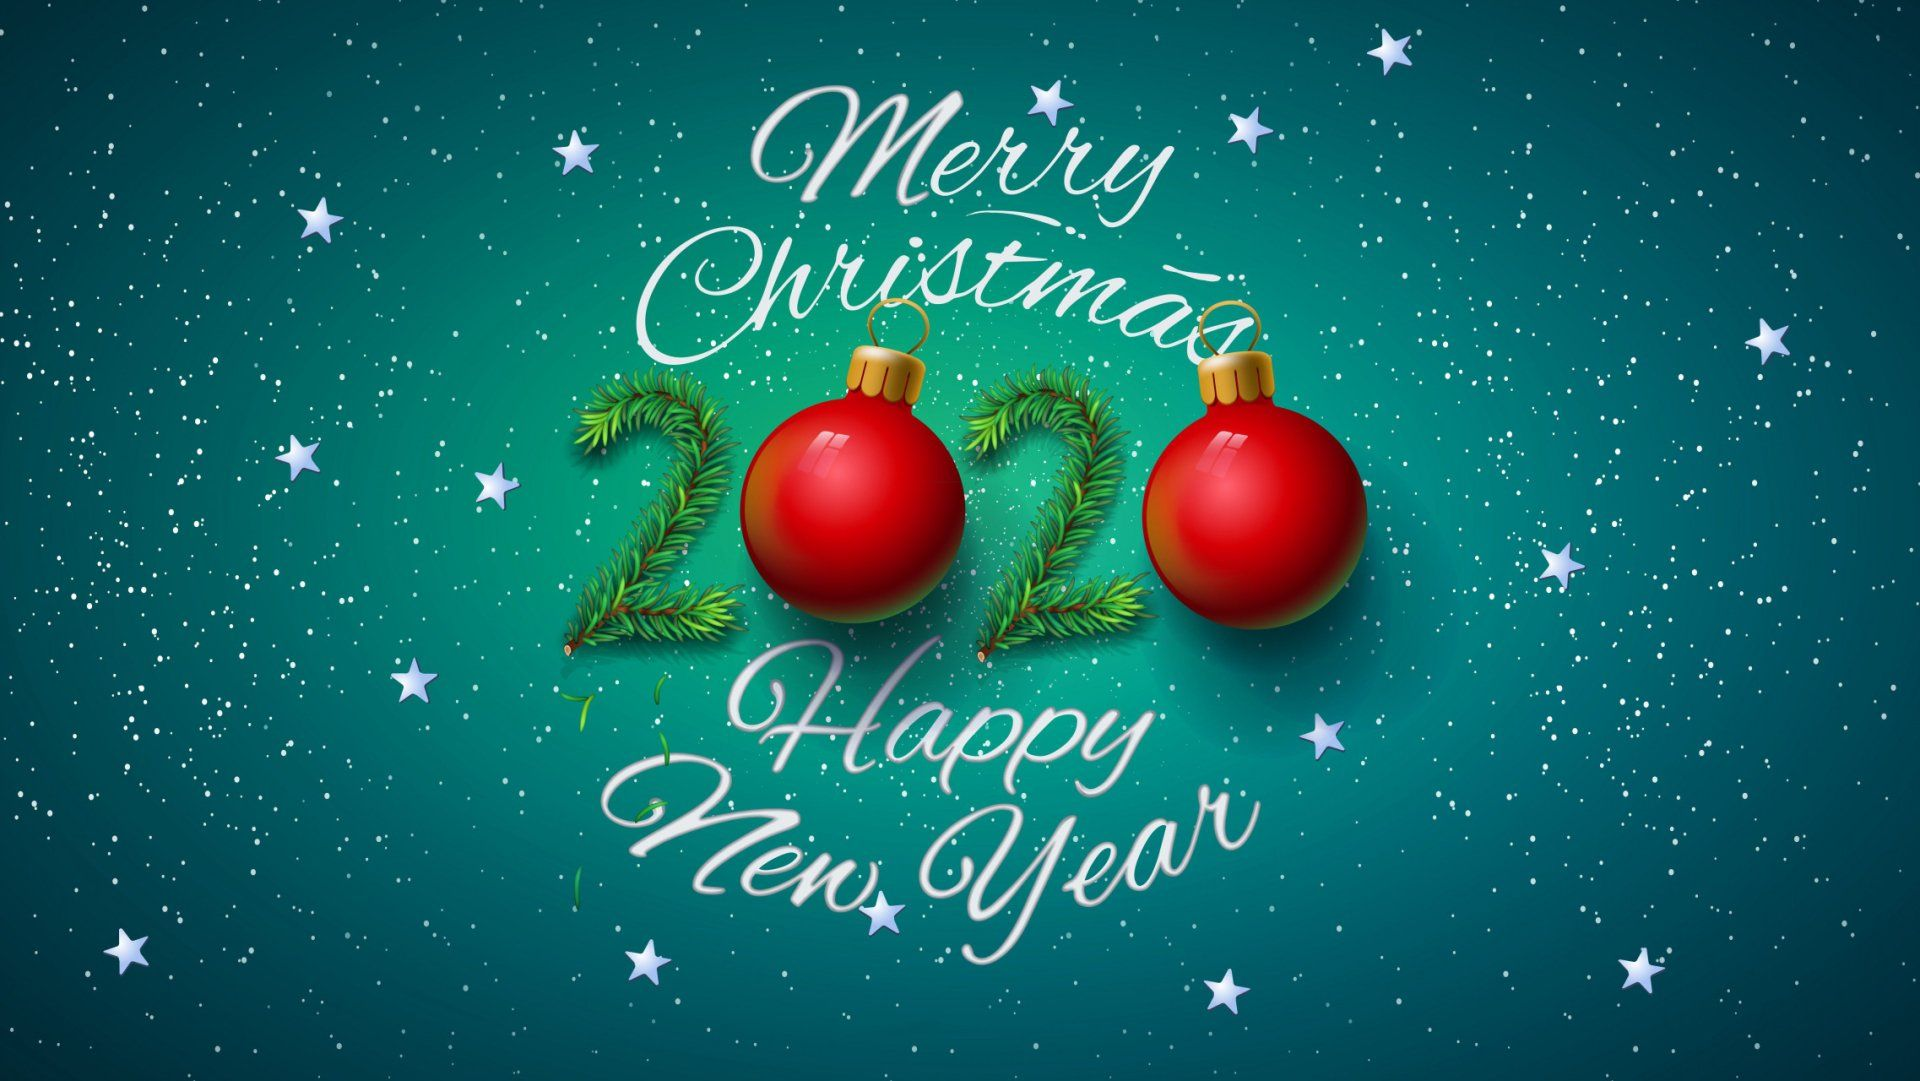 30 Happy New Year Images 2020 Wallpapers Free Download Merry Christmas Wallpaper Happy New Year Greetings Mother S Day Greeting Cards